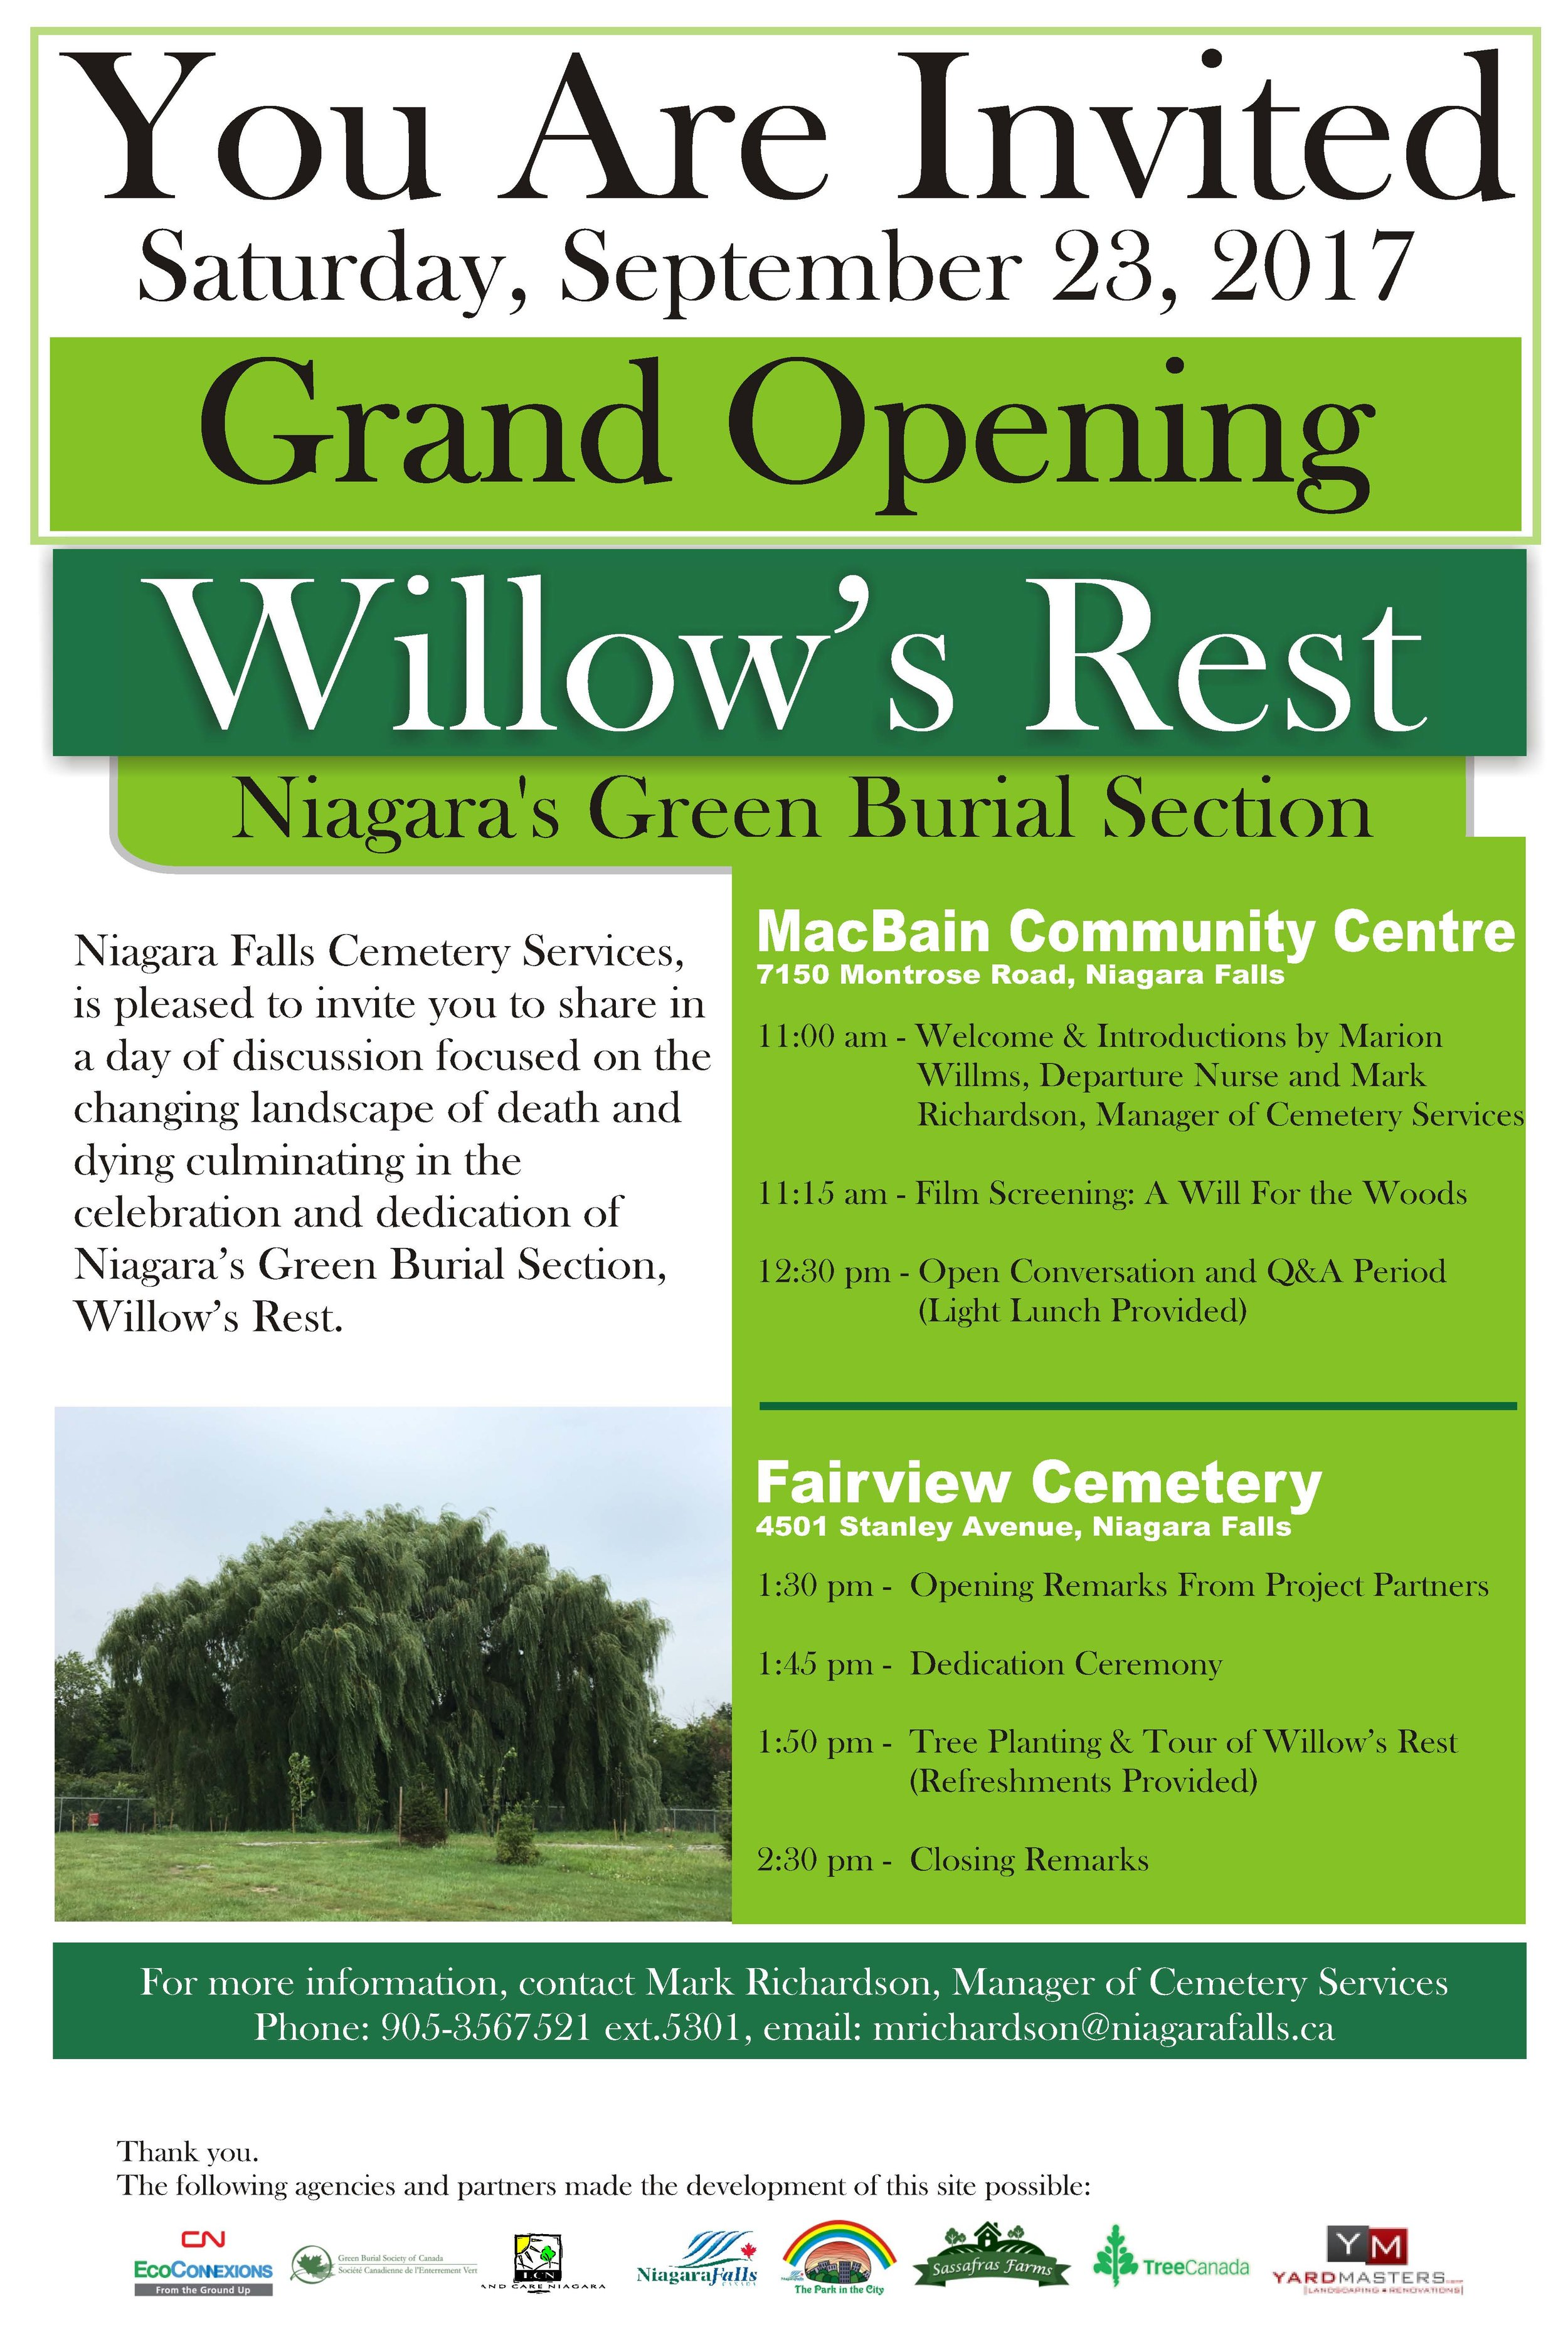 Willow's Rest Grand Opening Poster.jpg